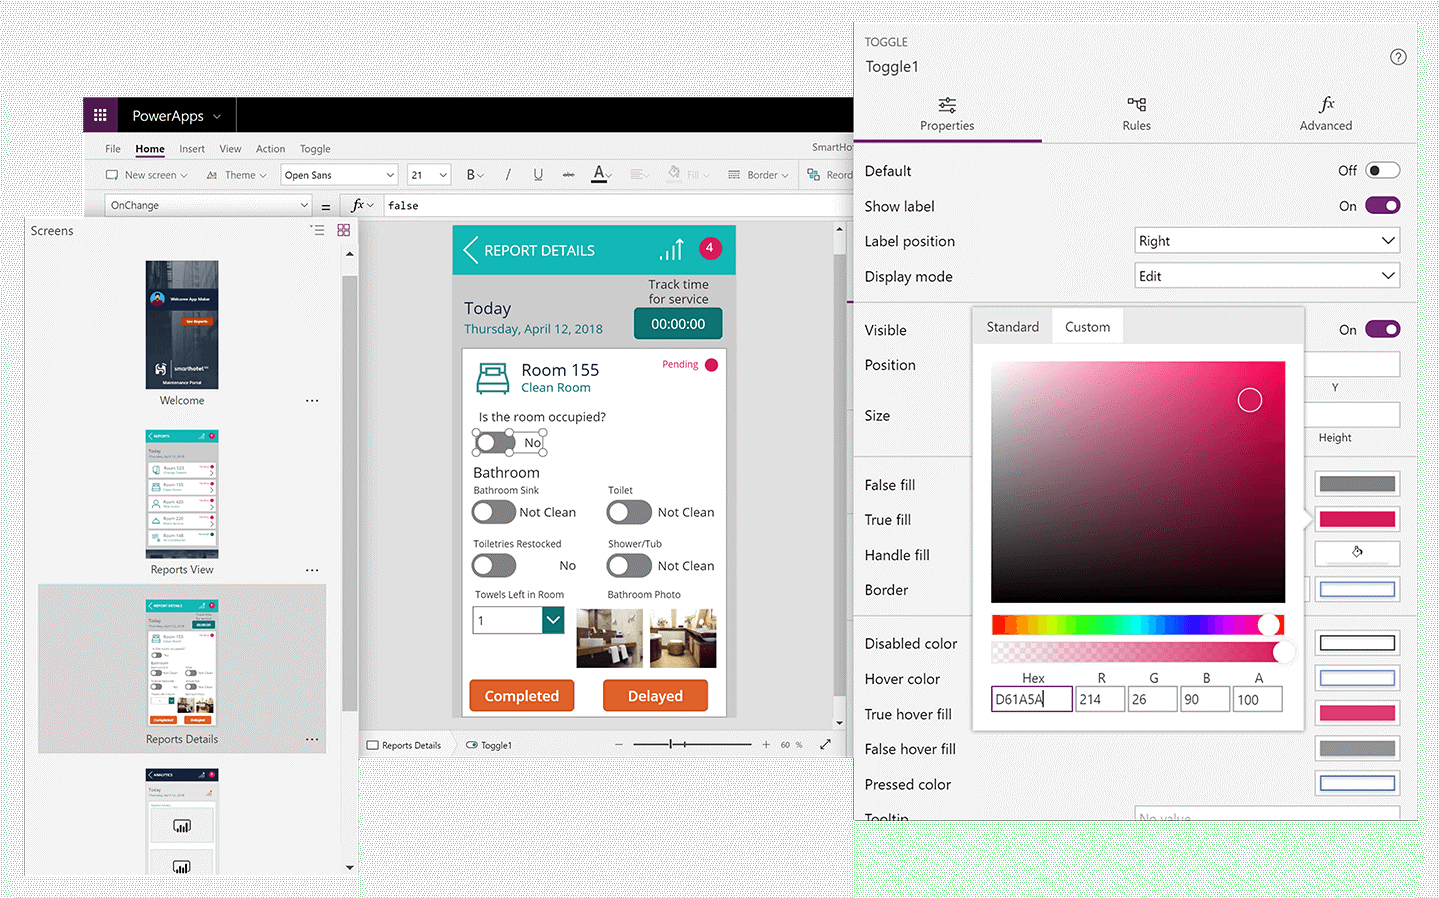 powerapps canvas apps